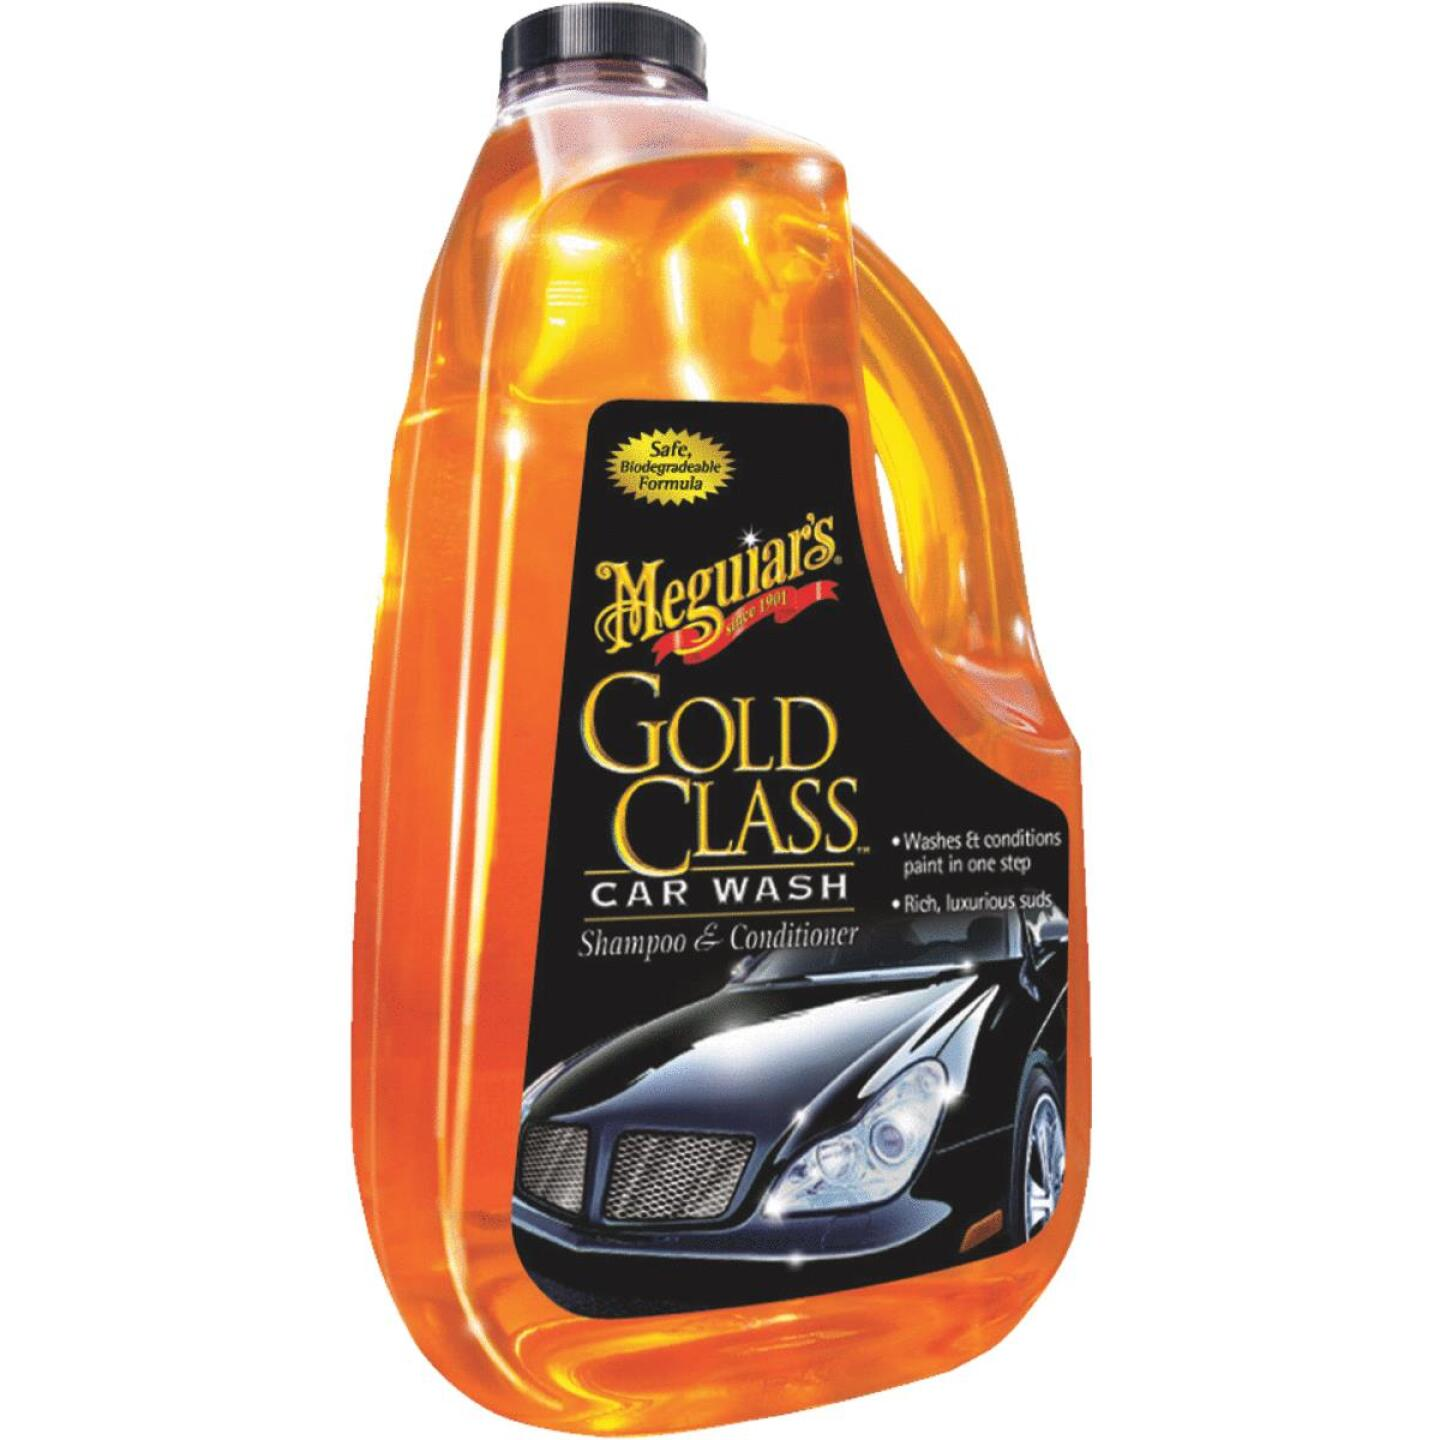 Meguiars Gold Class Liquid 64 oz Car Wash Image 1